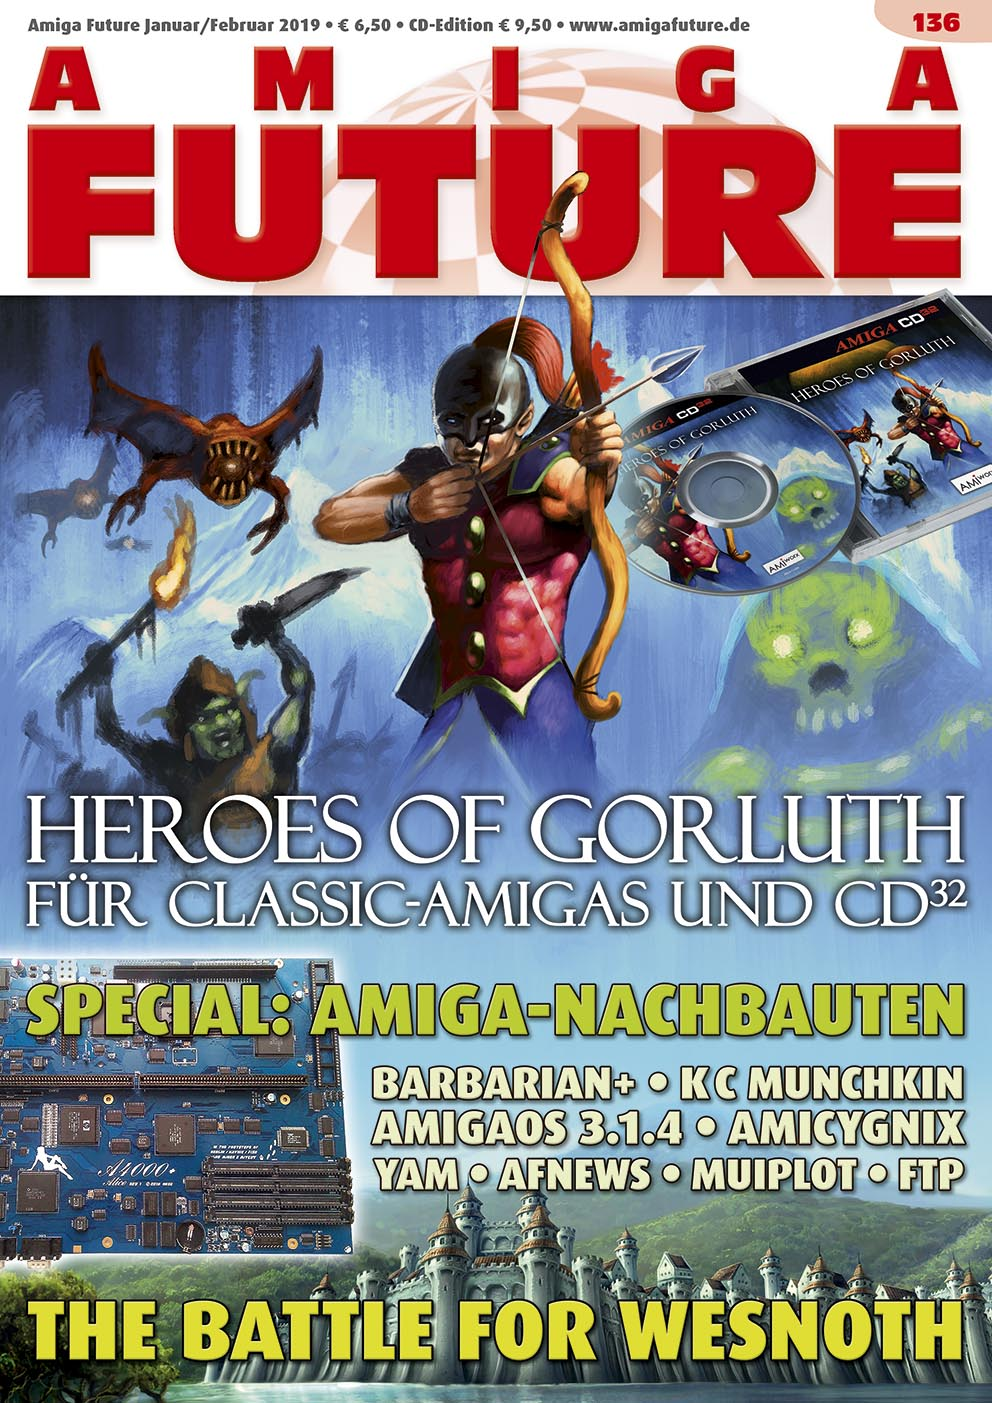 1 Year Subscription from Amiga Future Issue 136